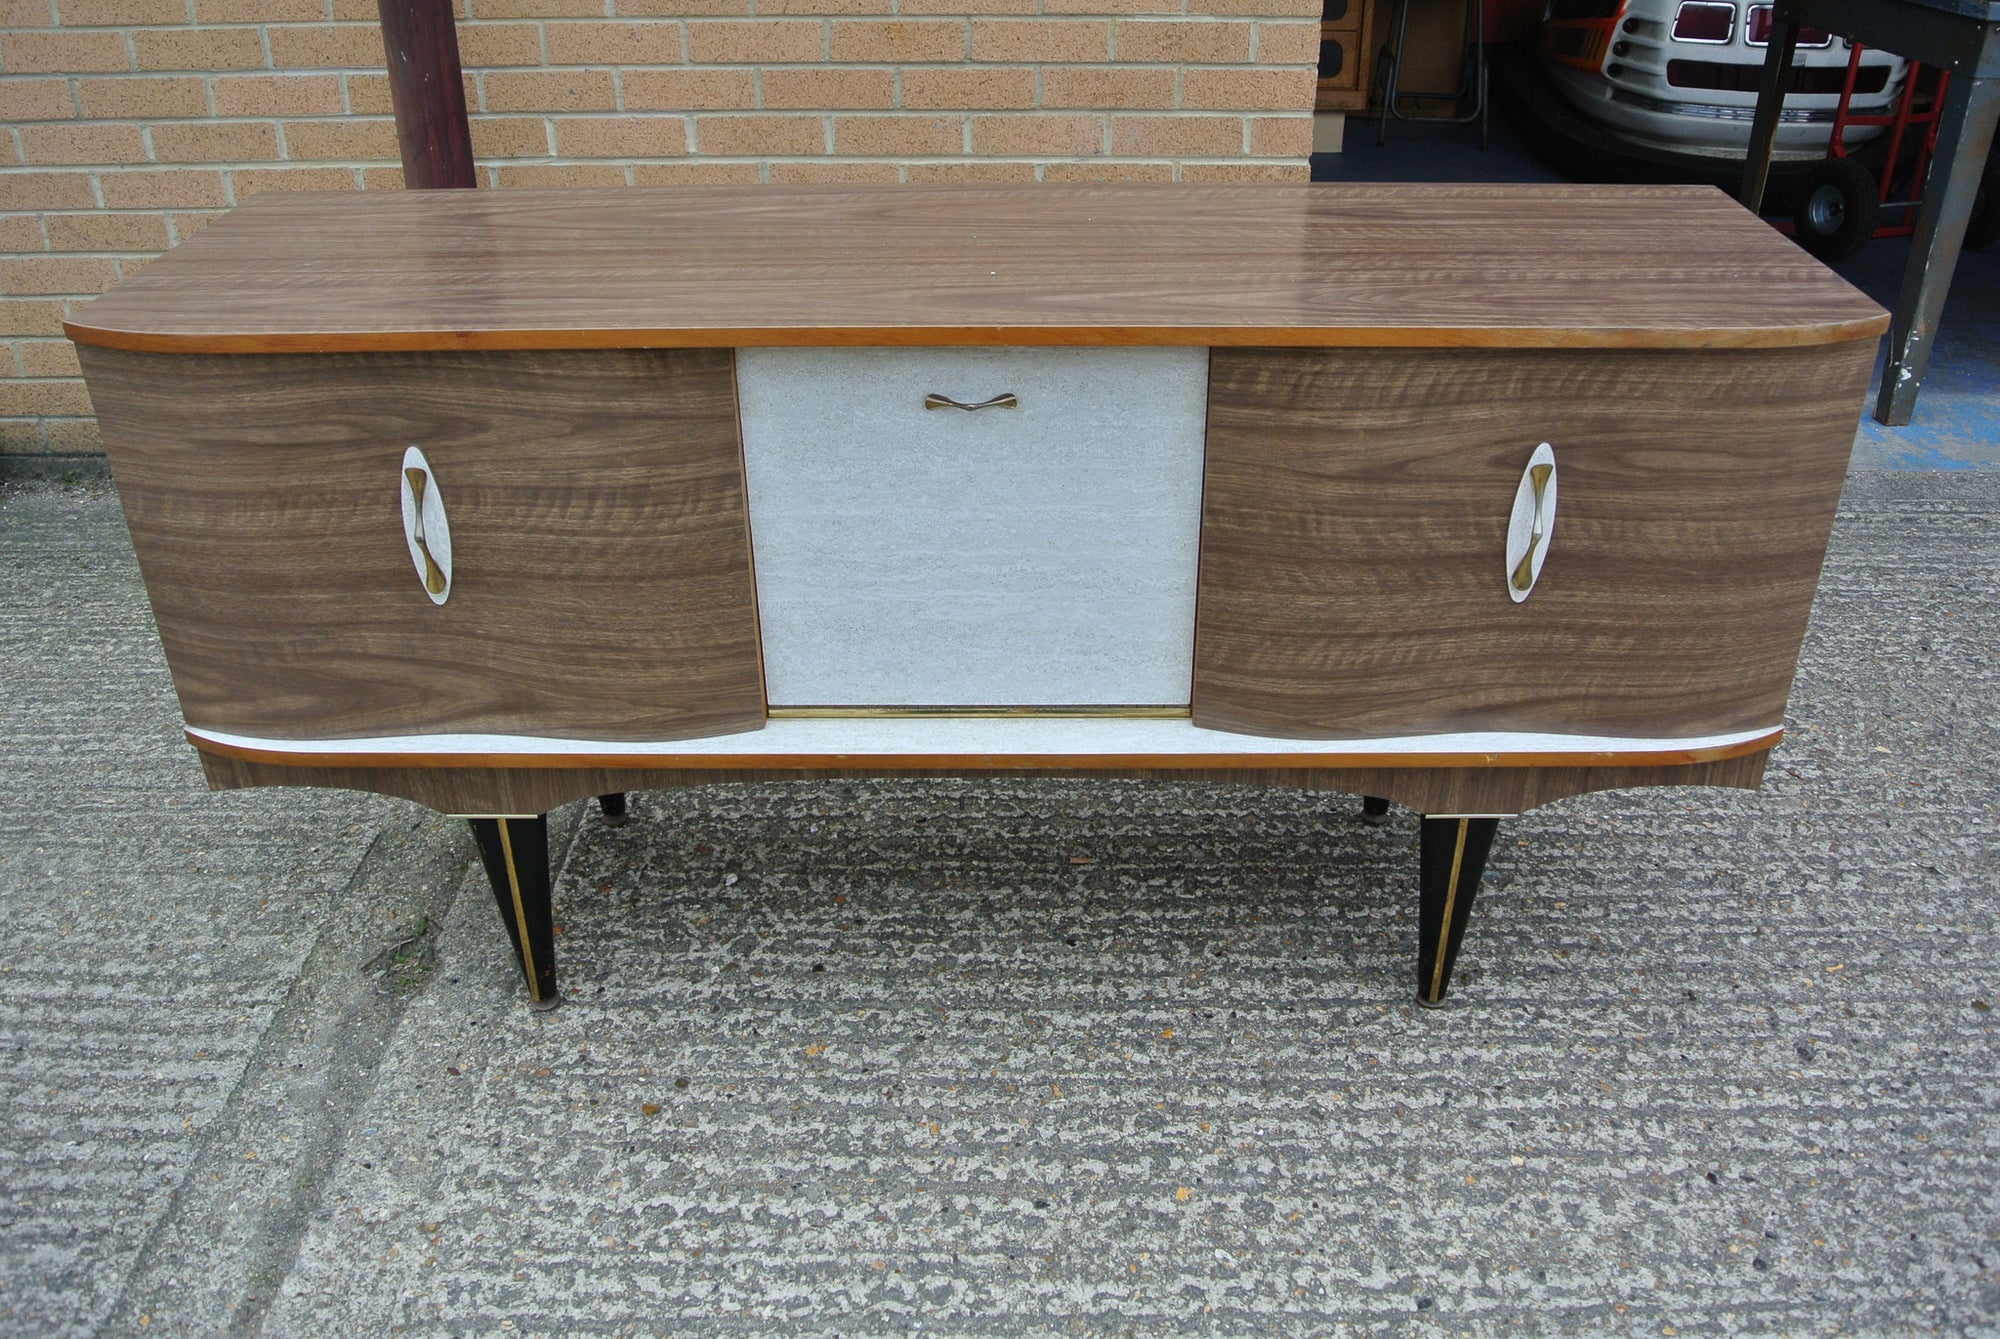 1950s/1960s Two-tone Formica Sideboard